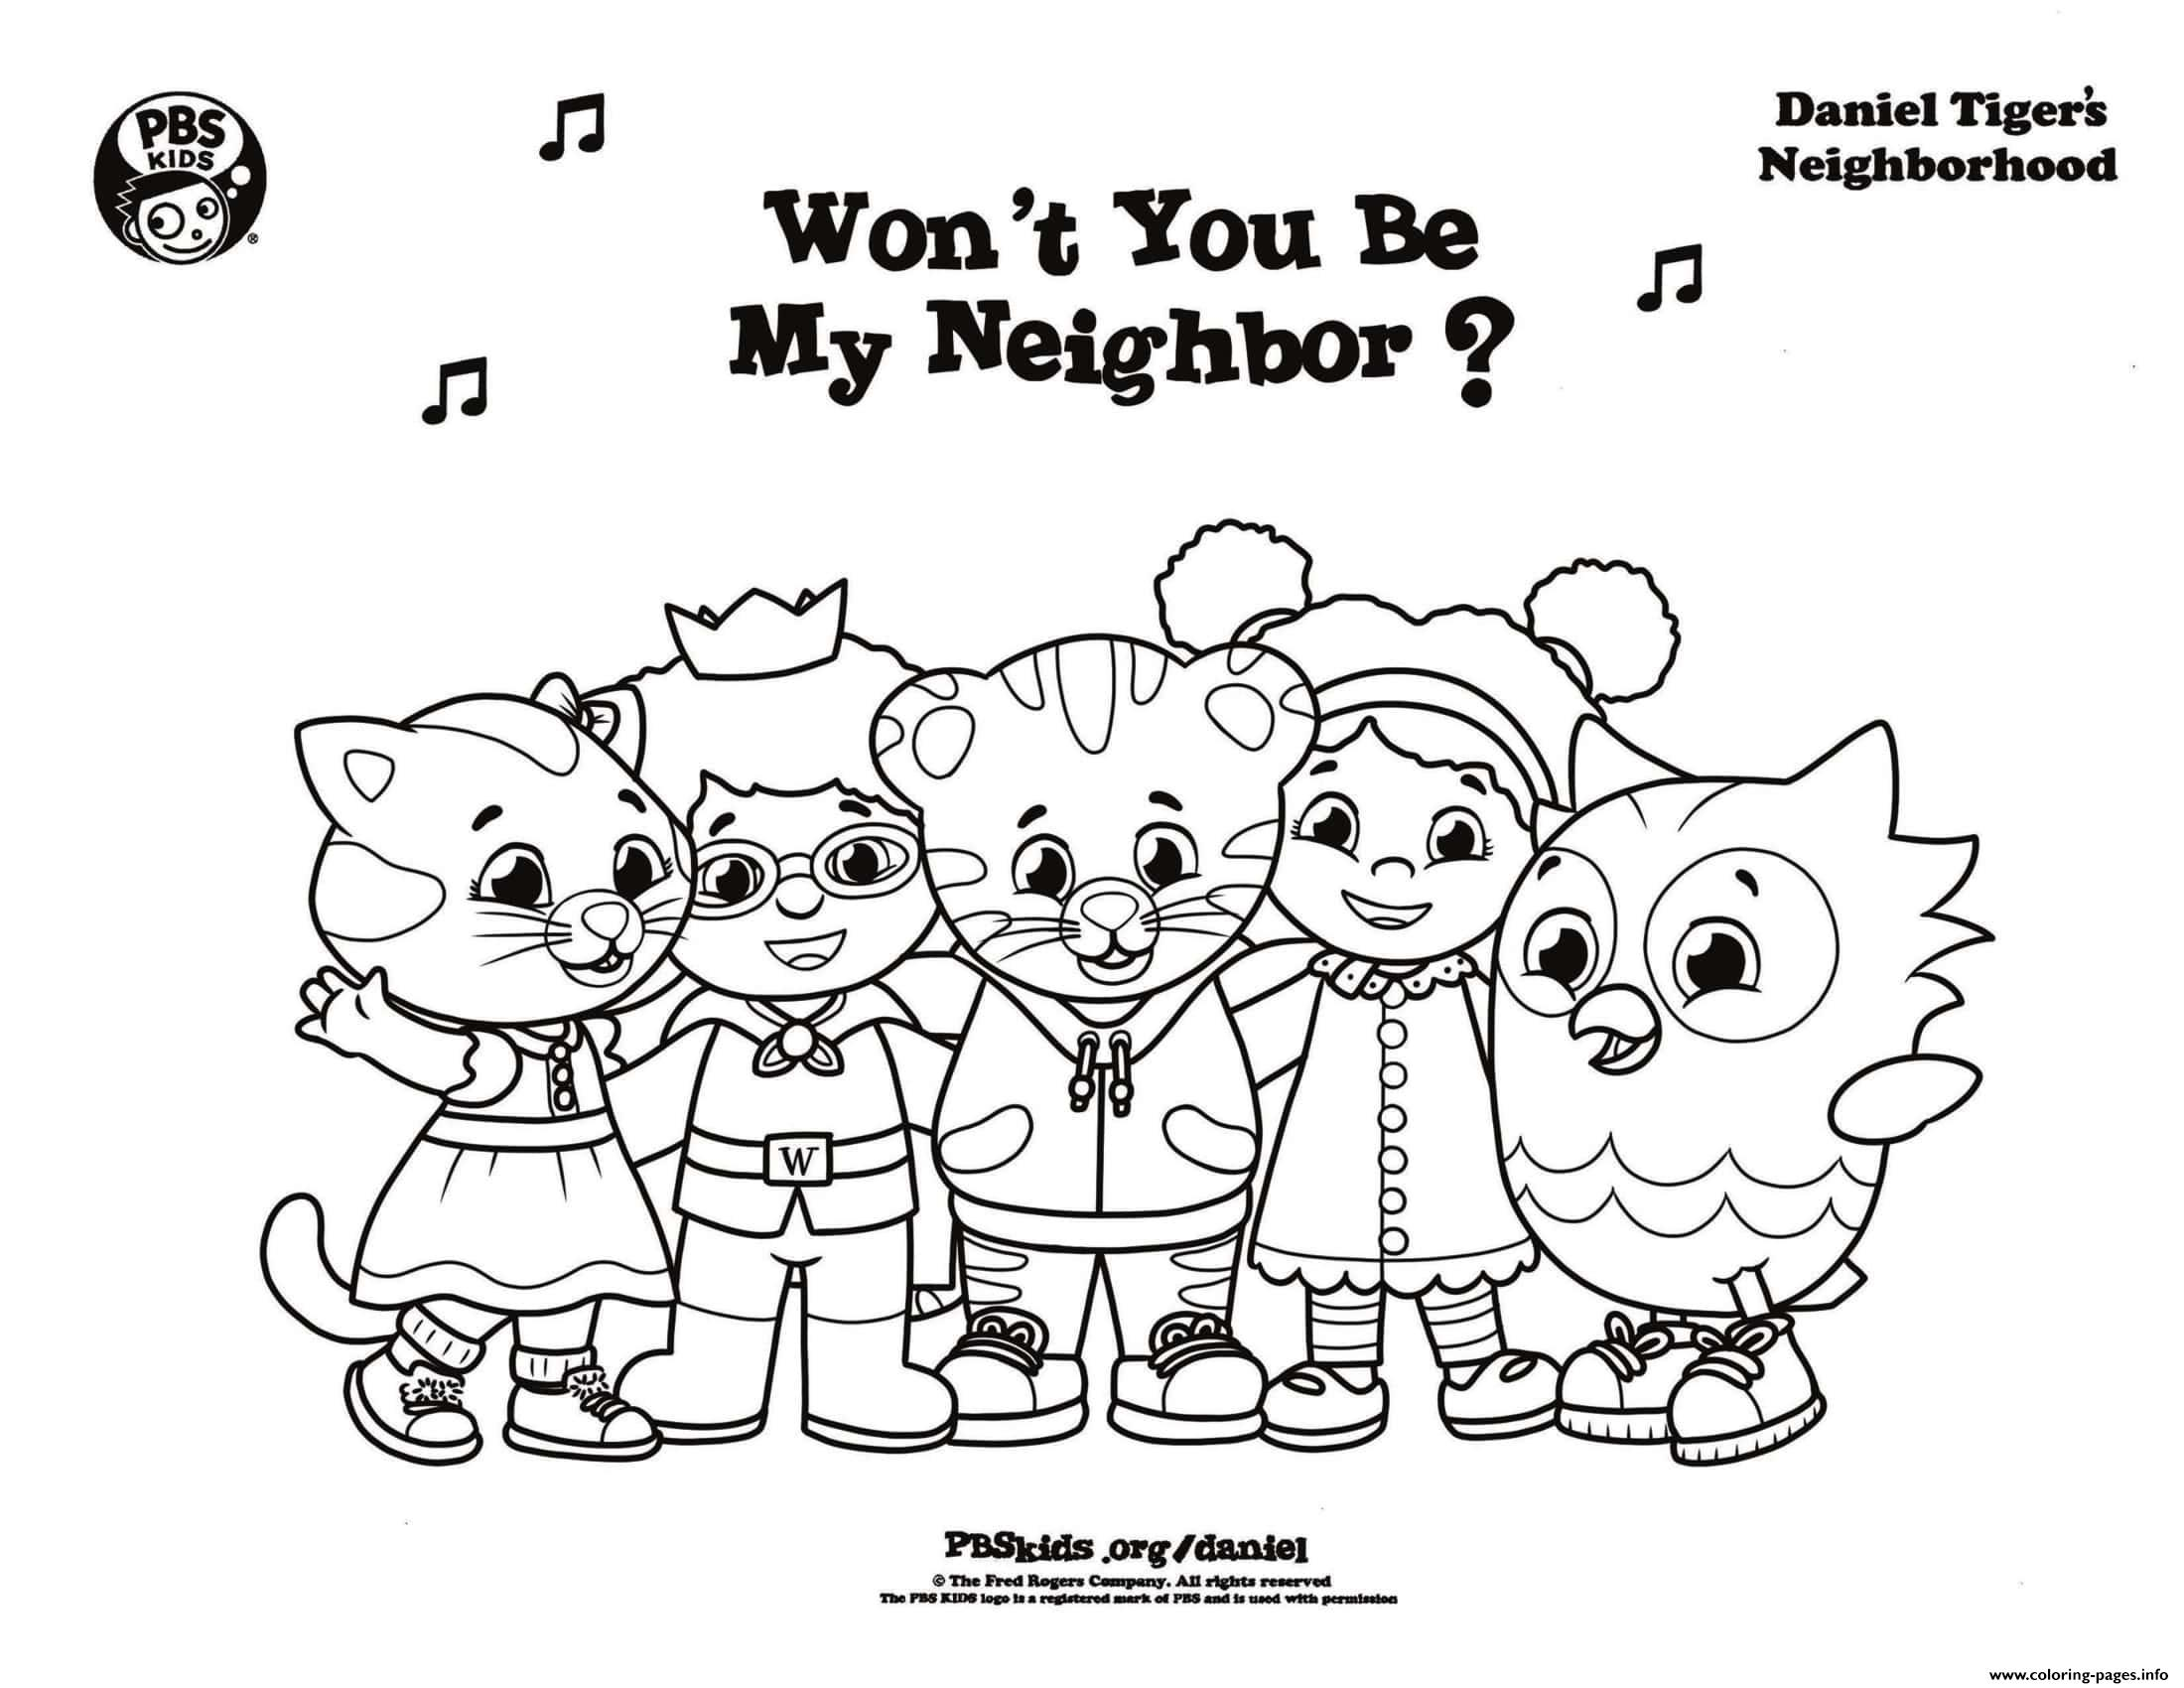 Neighborhood Coloring Page - Coloring Home | 1700x2200